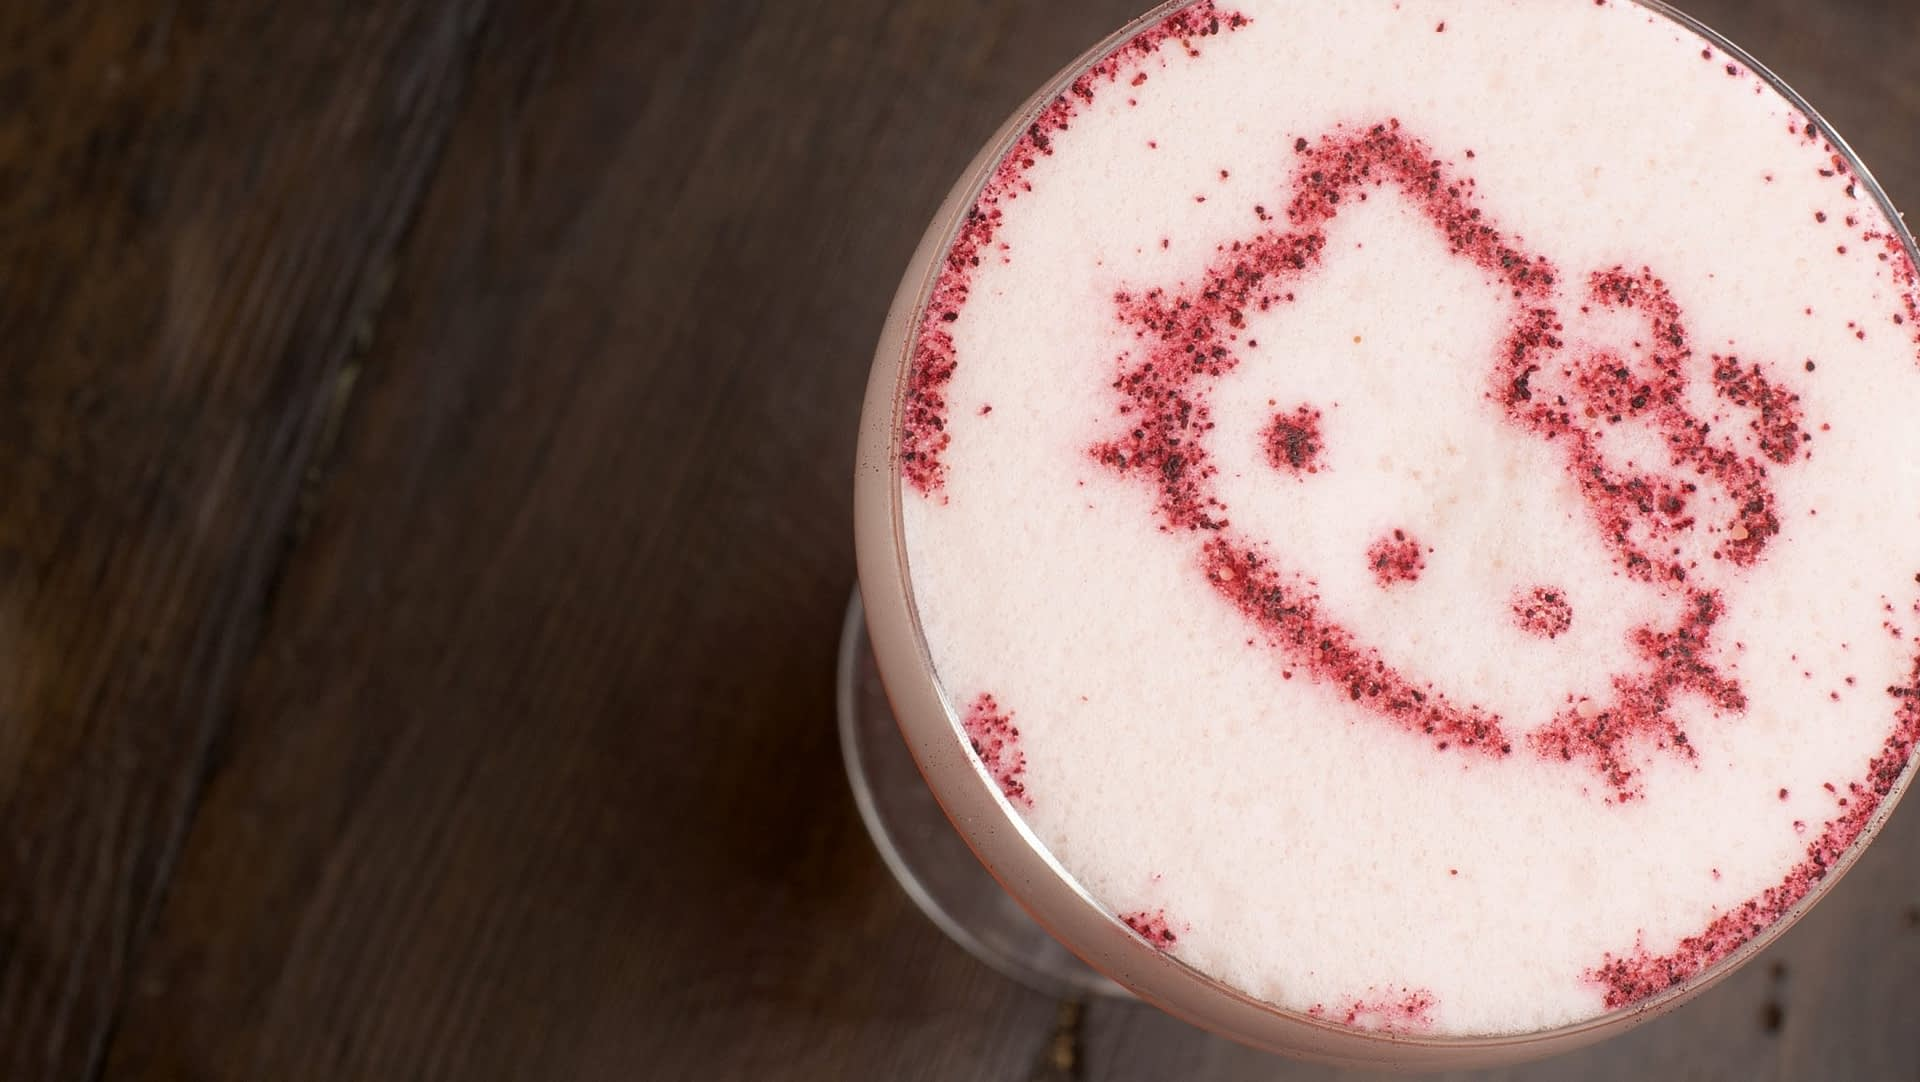 Overhead view of a pink eggwhite cocktail garnished with powdered berries in the shape of hello kitty is served on a wooden surface.